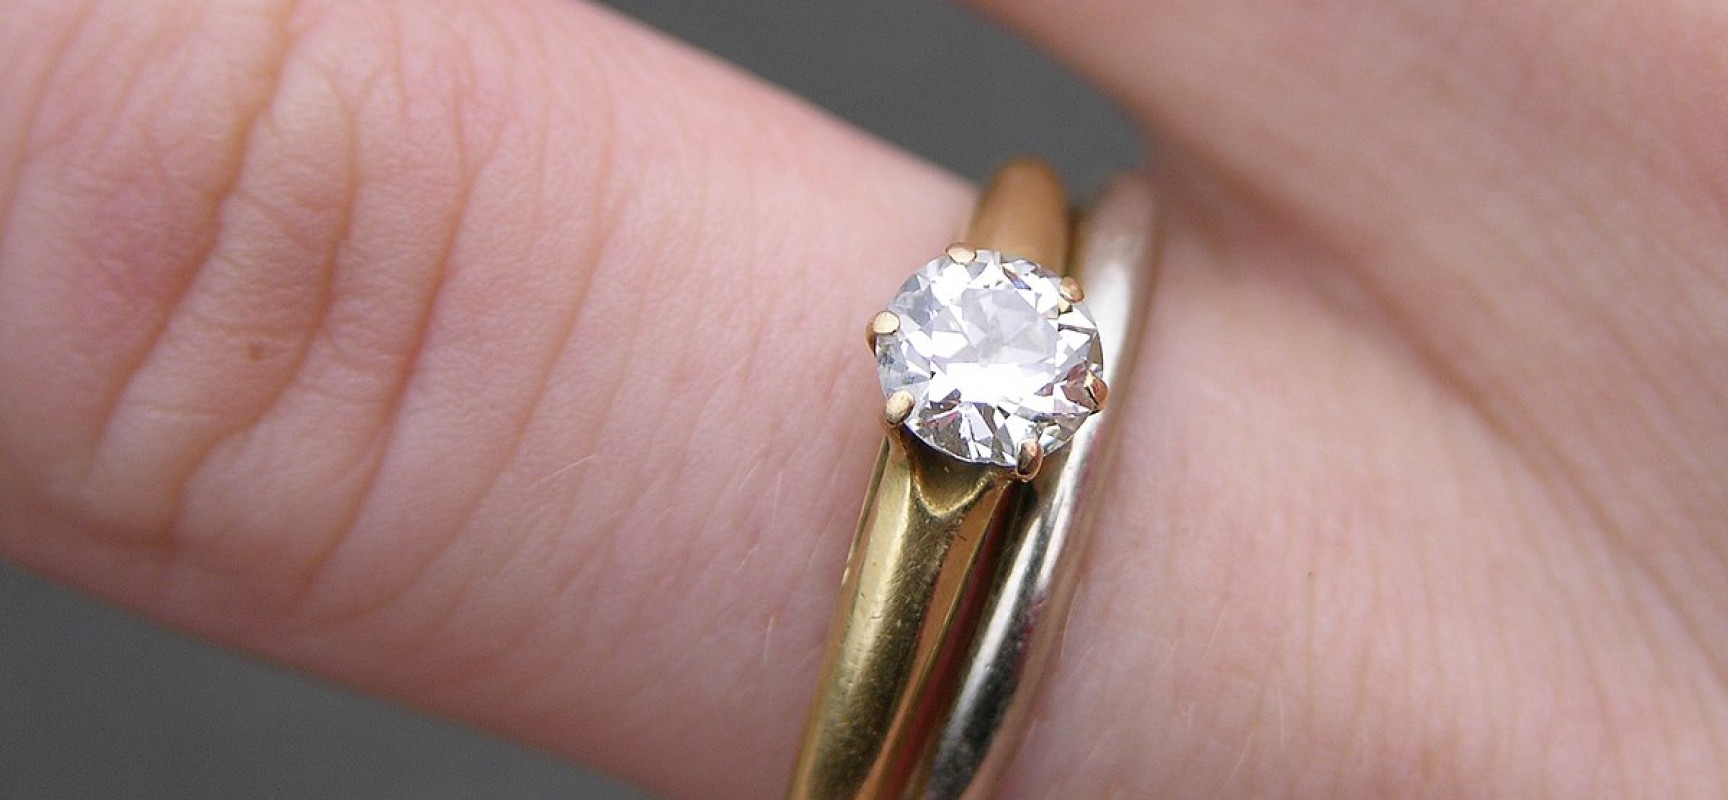 Choosing the Right Engagement Ring For Life | inreads